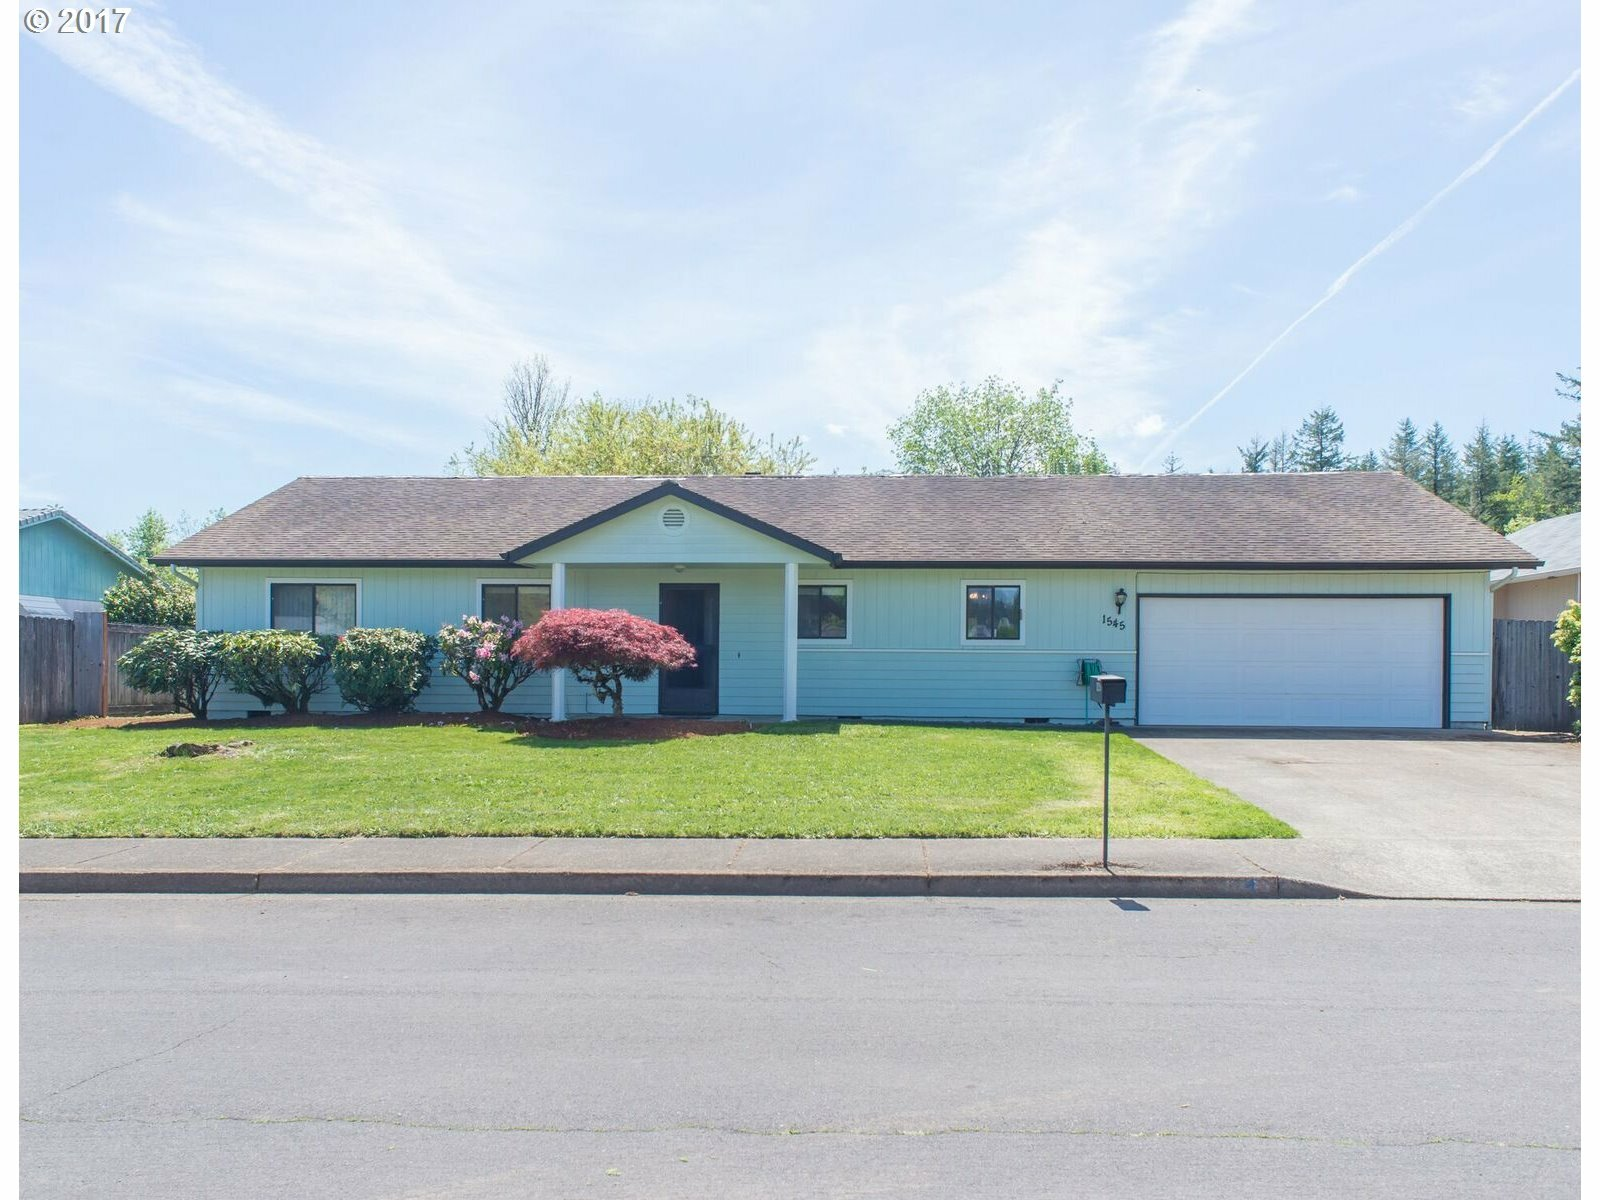 1545 Jason Lee Ave, Cottage Grove, OR - USA (photo 2)